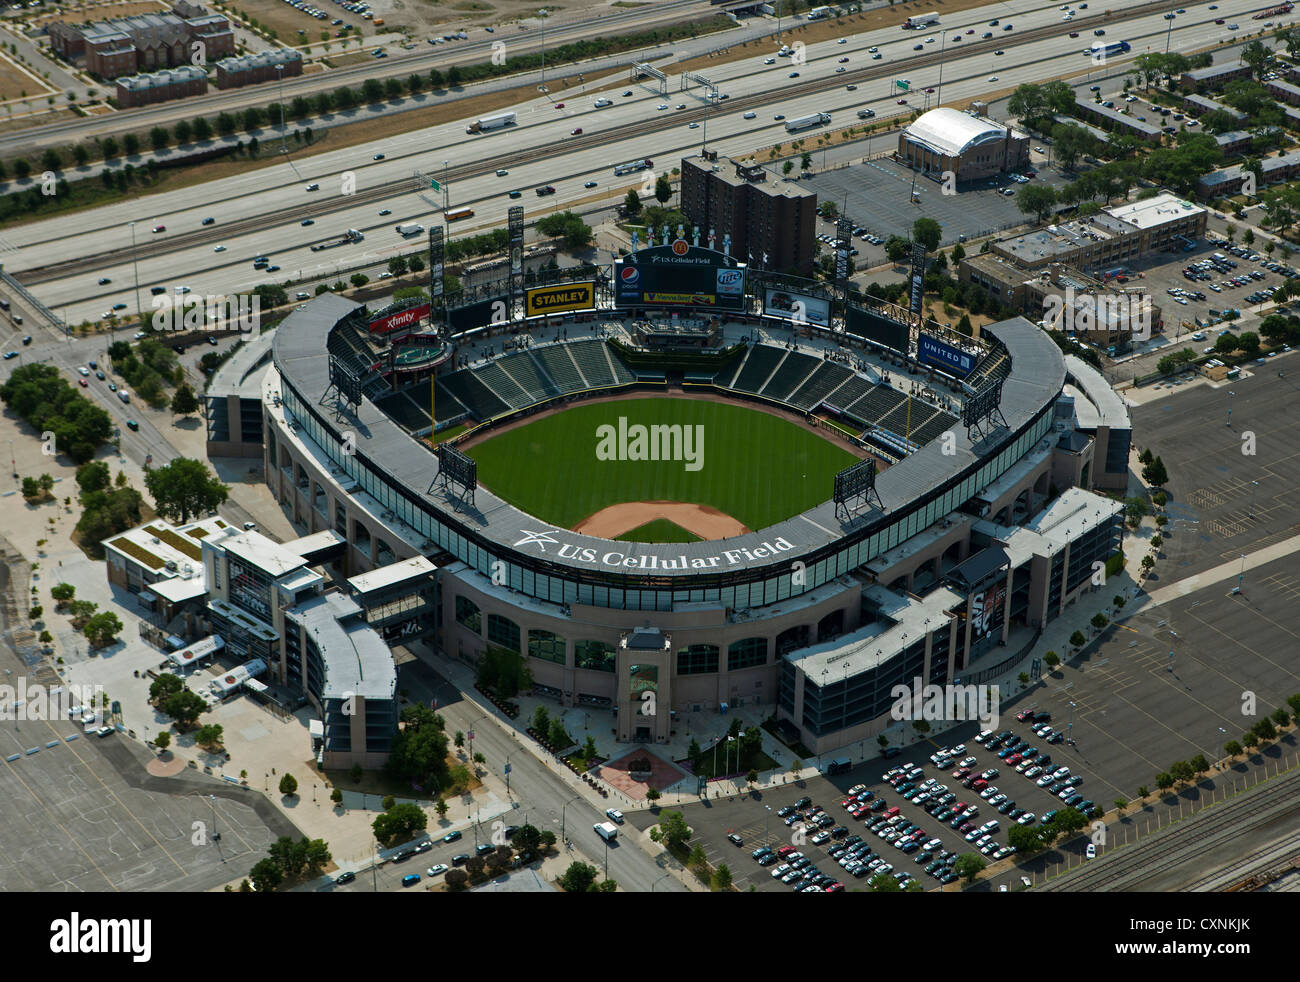 aerial photograph U.S. Cellular Field, Cominsky Park, Chicago, Illinois - Stock Image